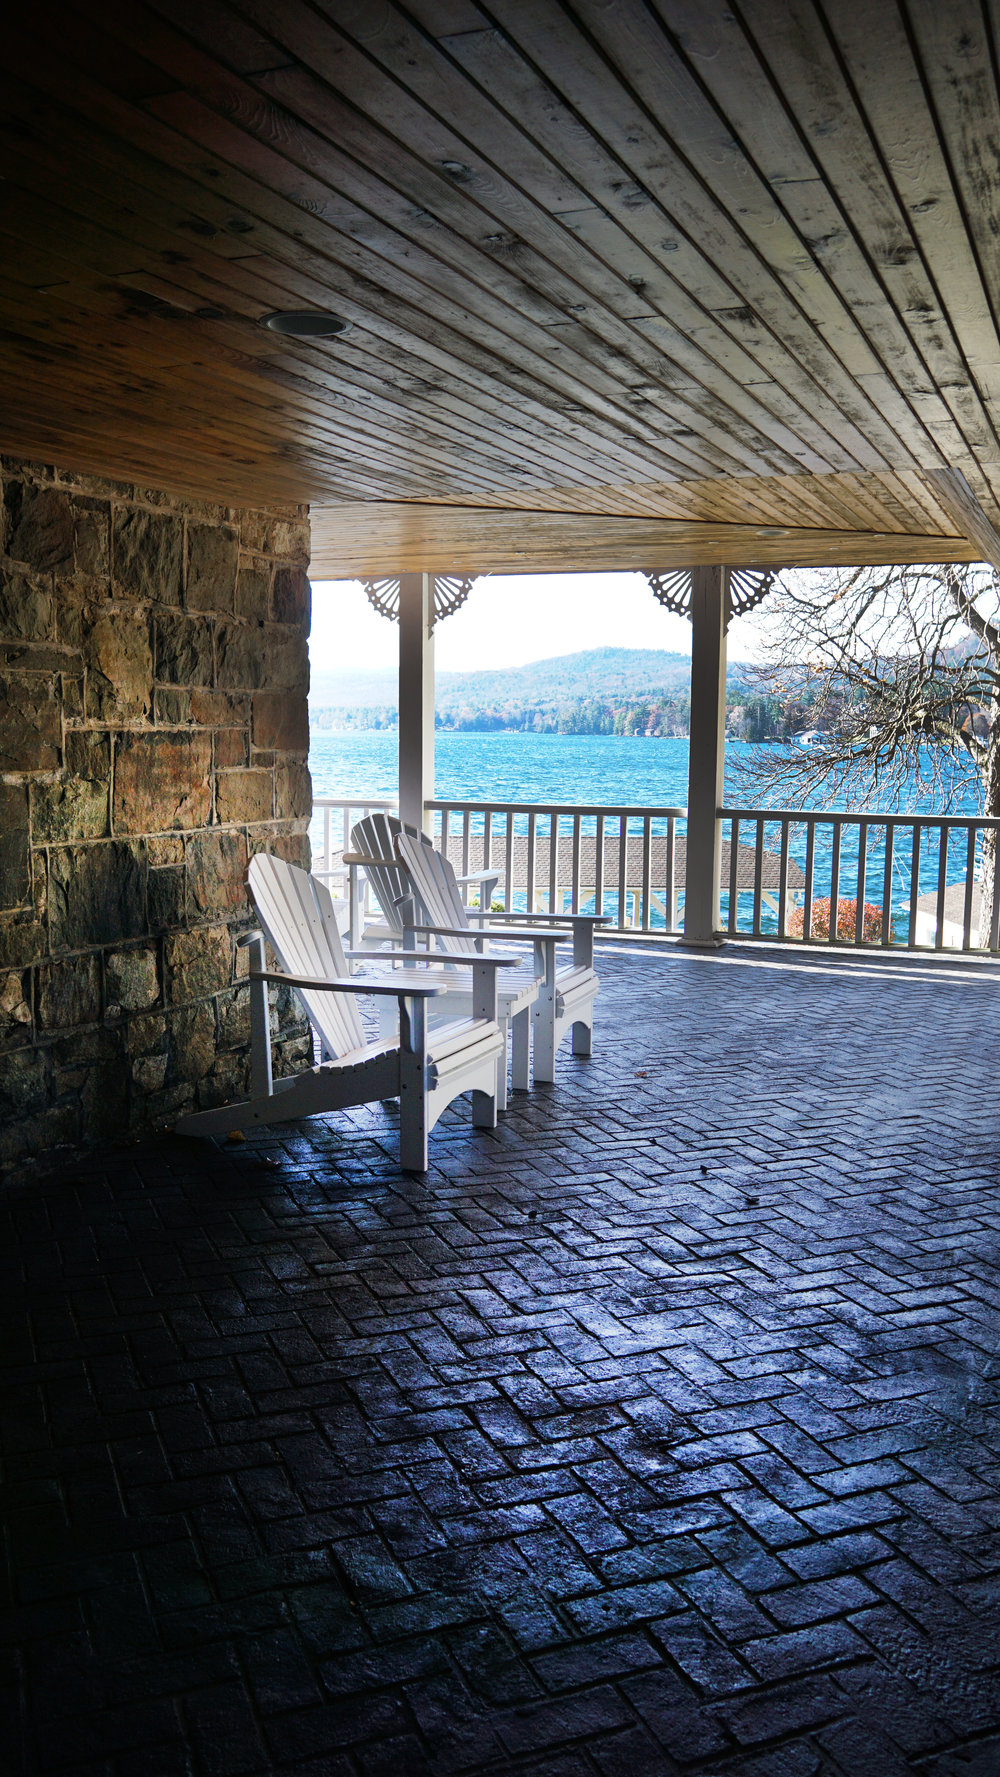 lake george bolton landing rental basement porch.jpg